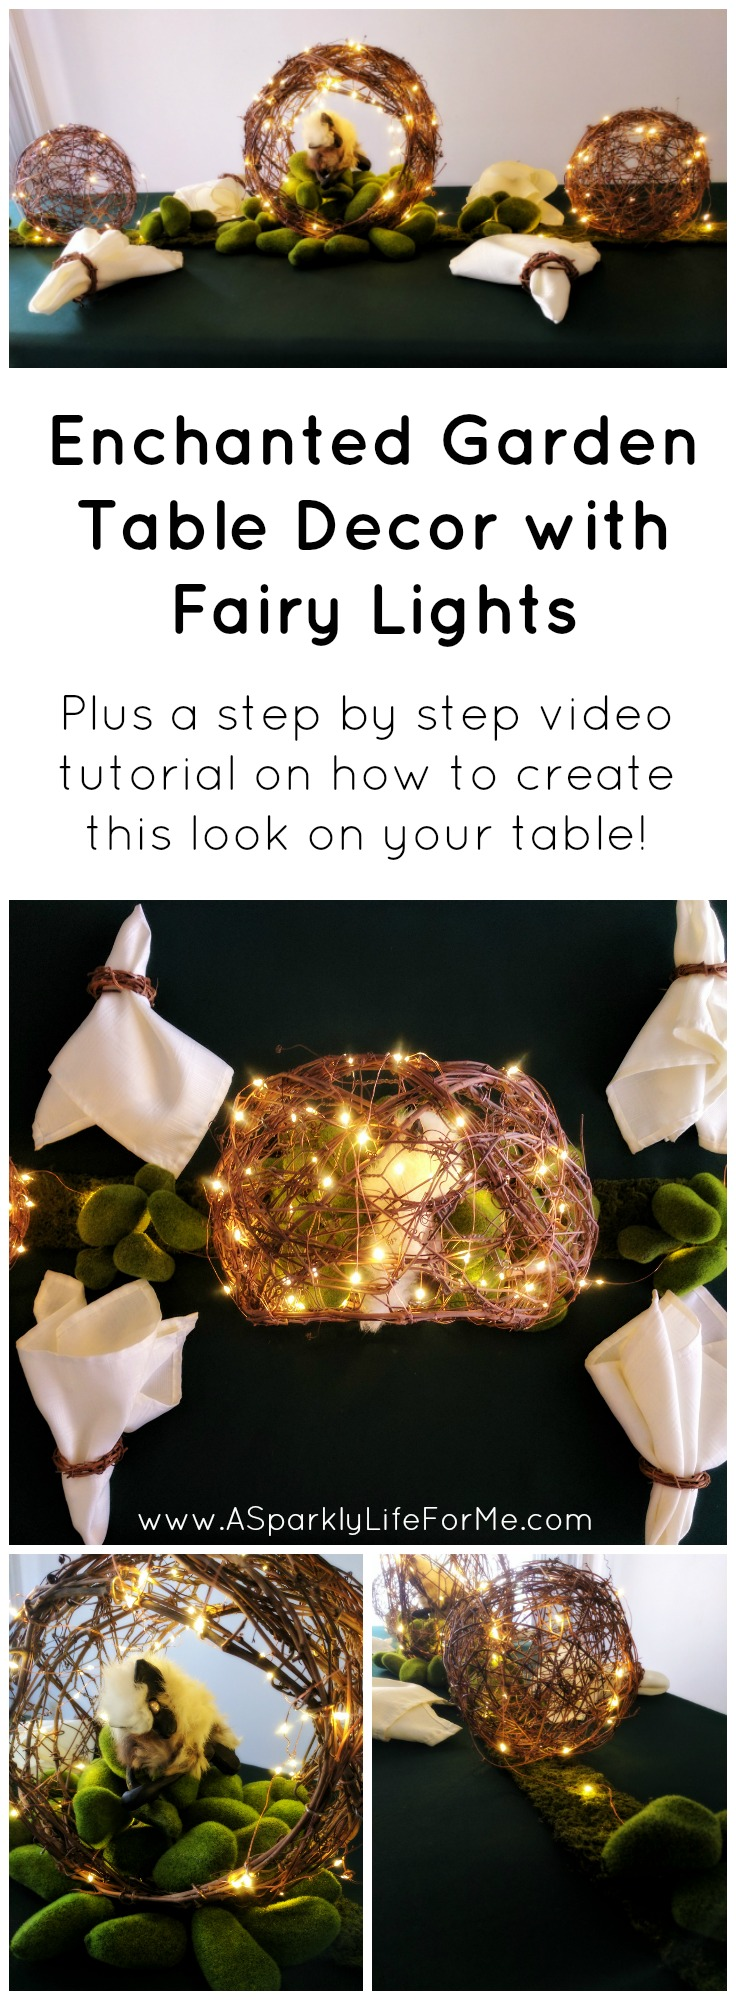 Diy Enchanted Garden Table Decor With Fairy Lights A